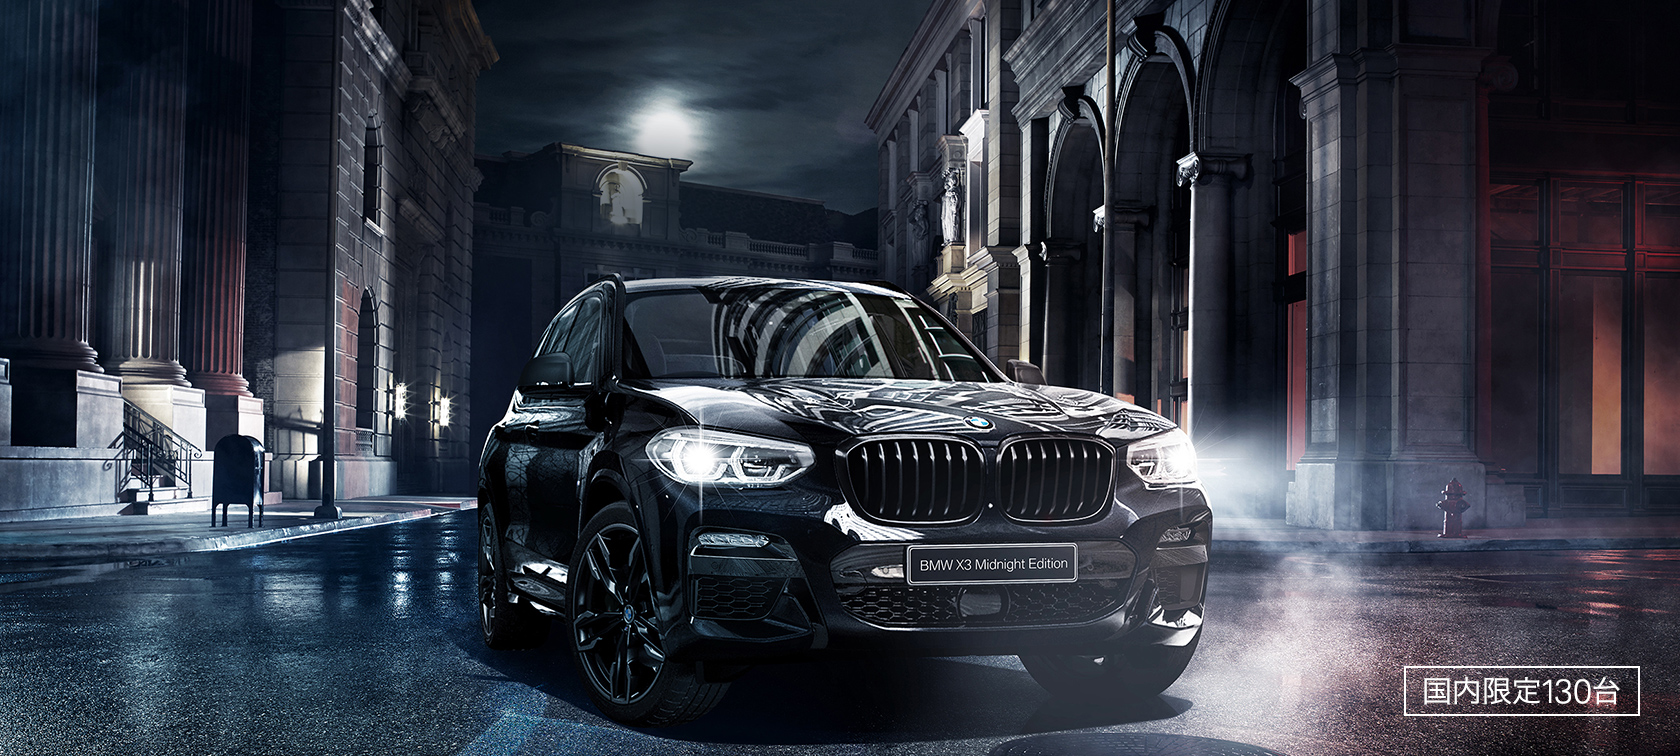 BMW X3 MIDNIGHT EDITION、登場